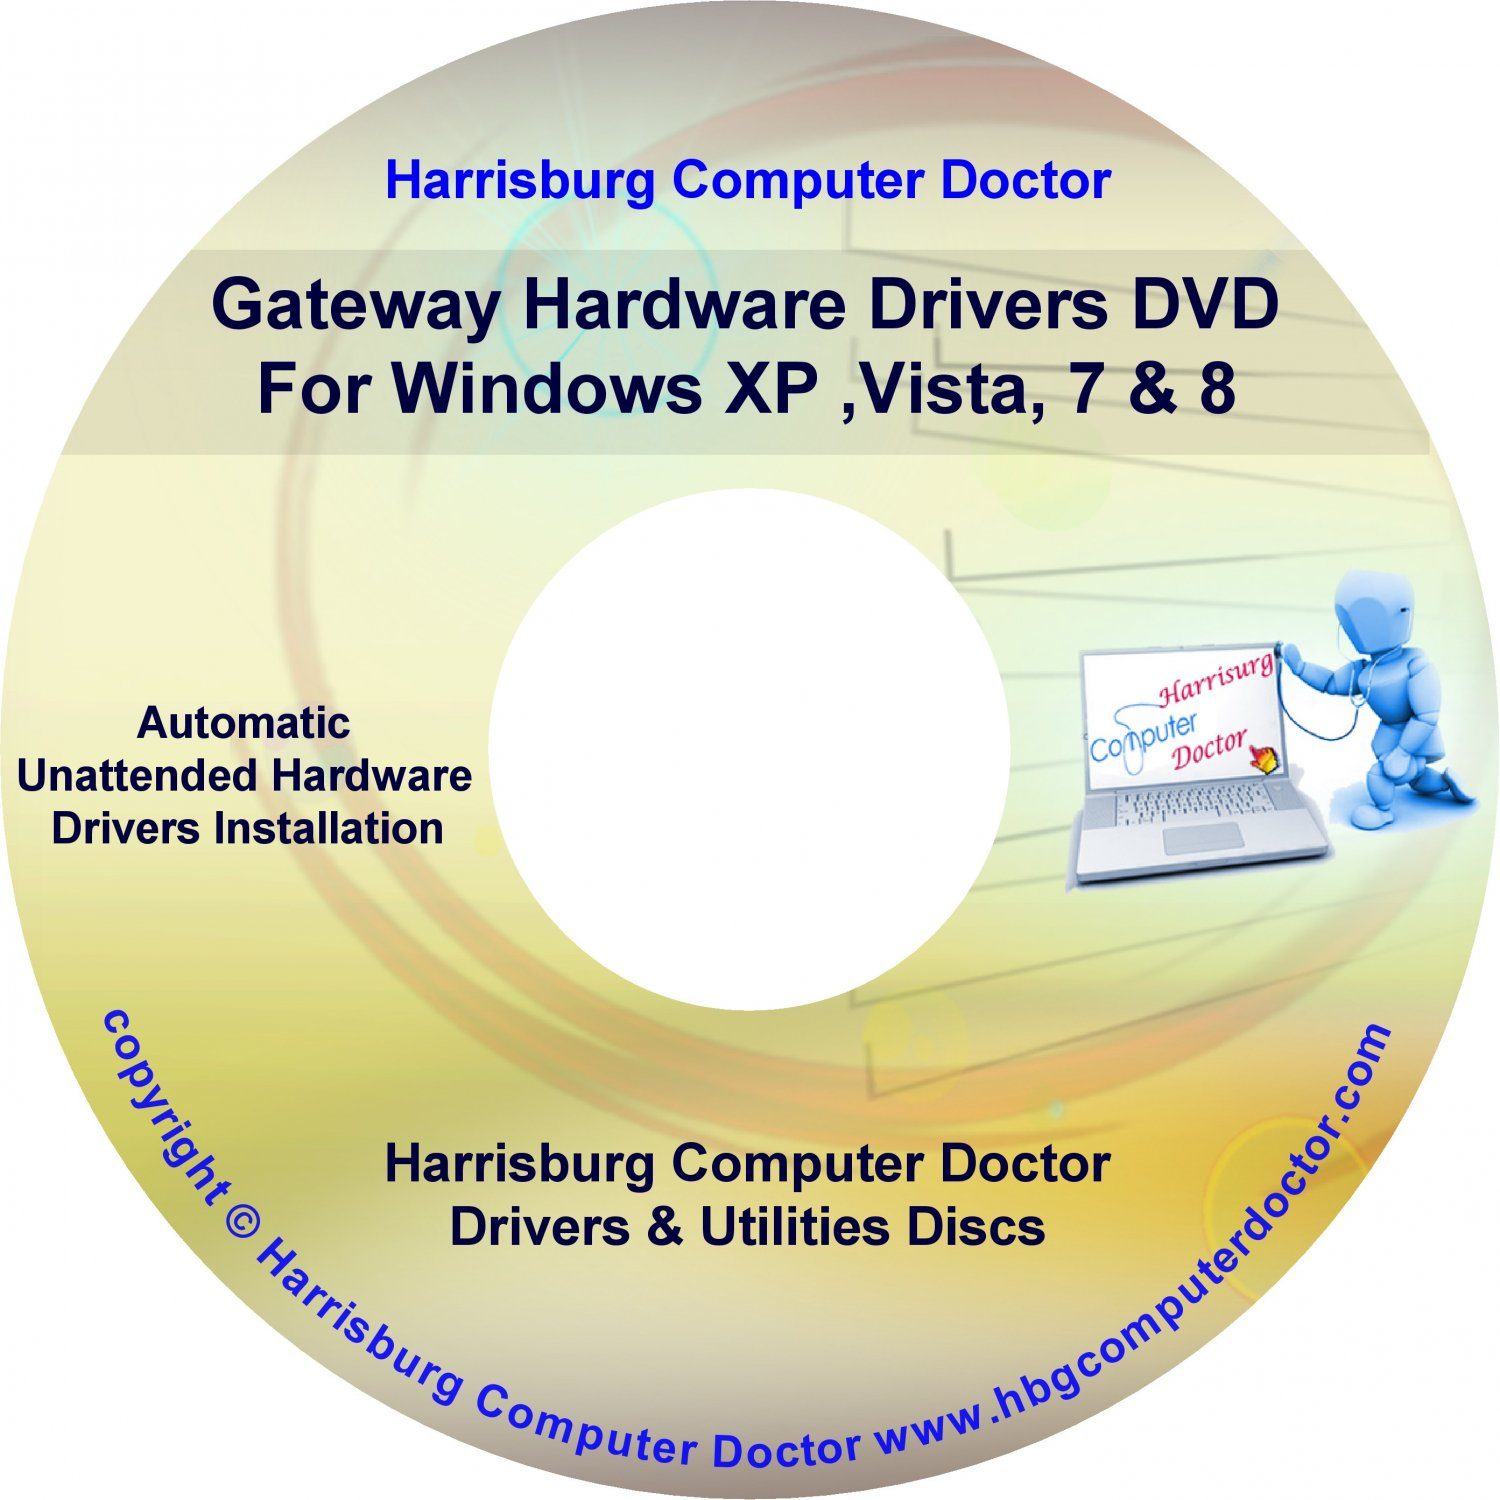 Gateway MX6946m Drivers DVD For Windows, XP, Vista, 7 & 8